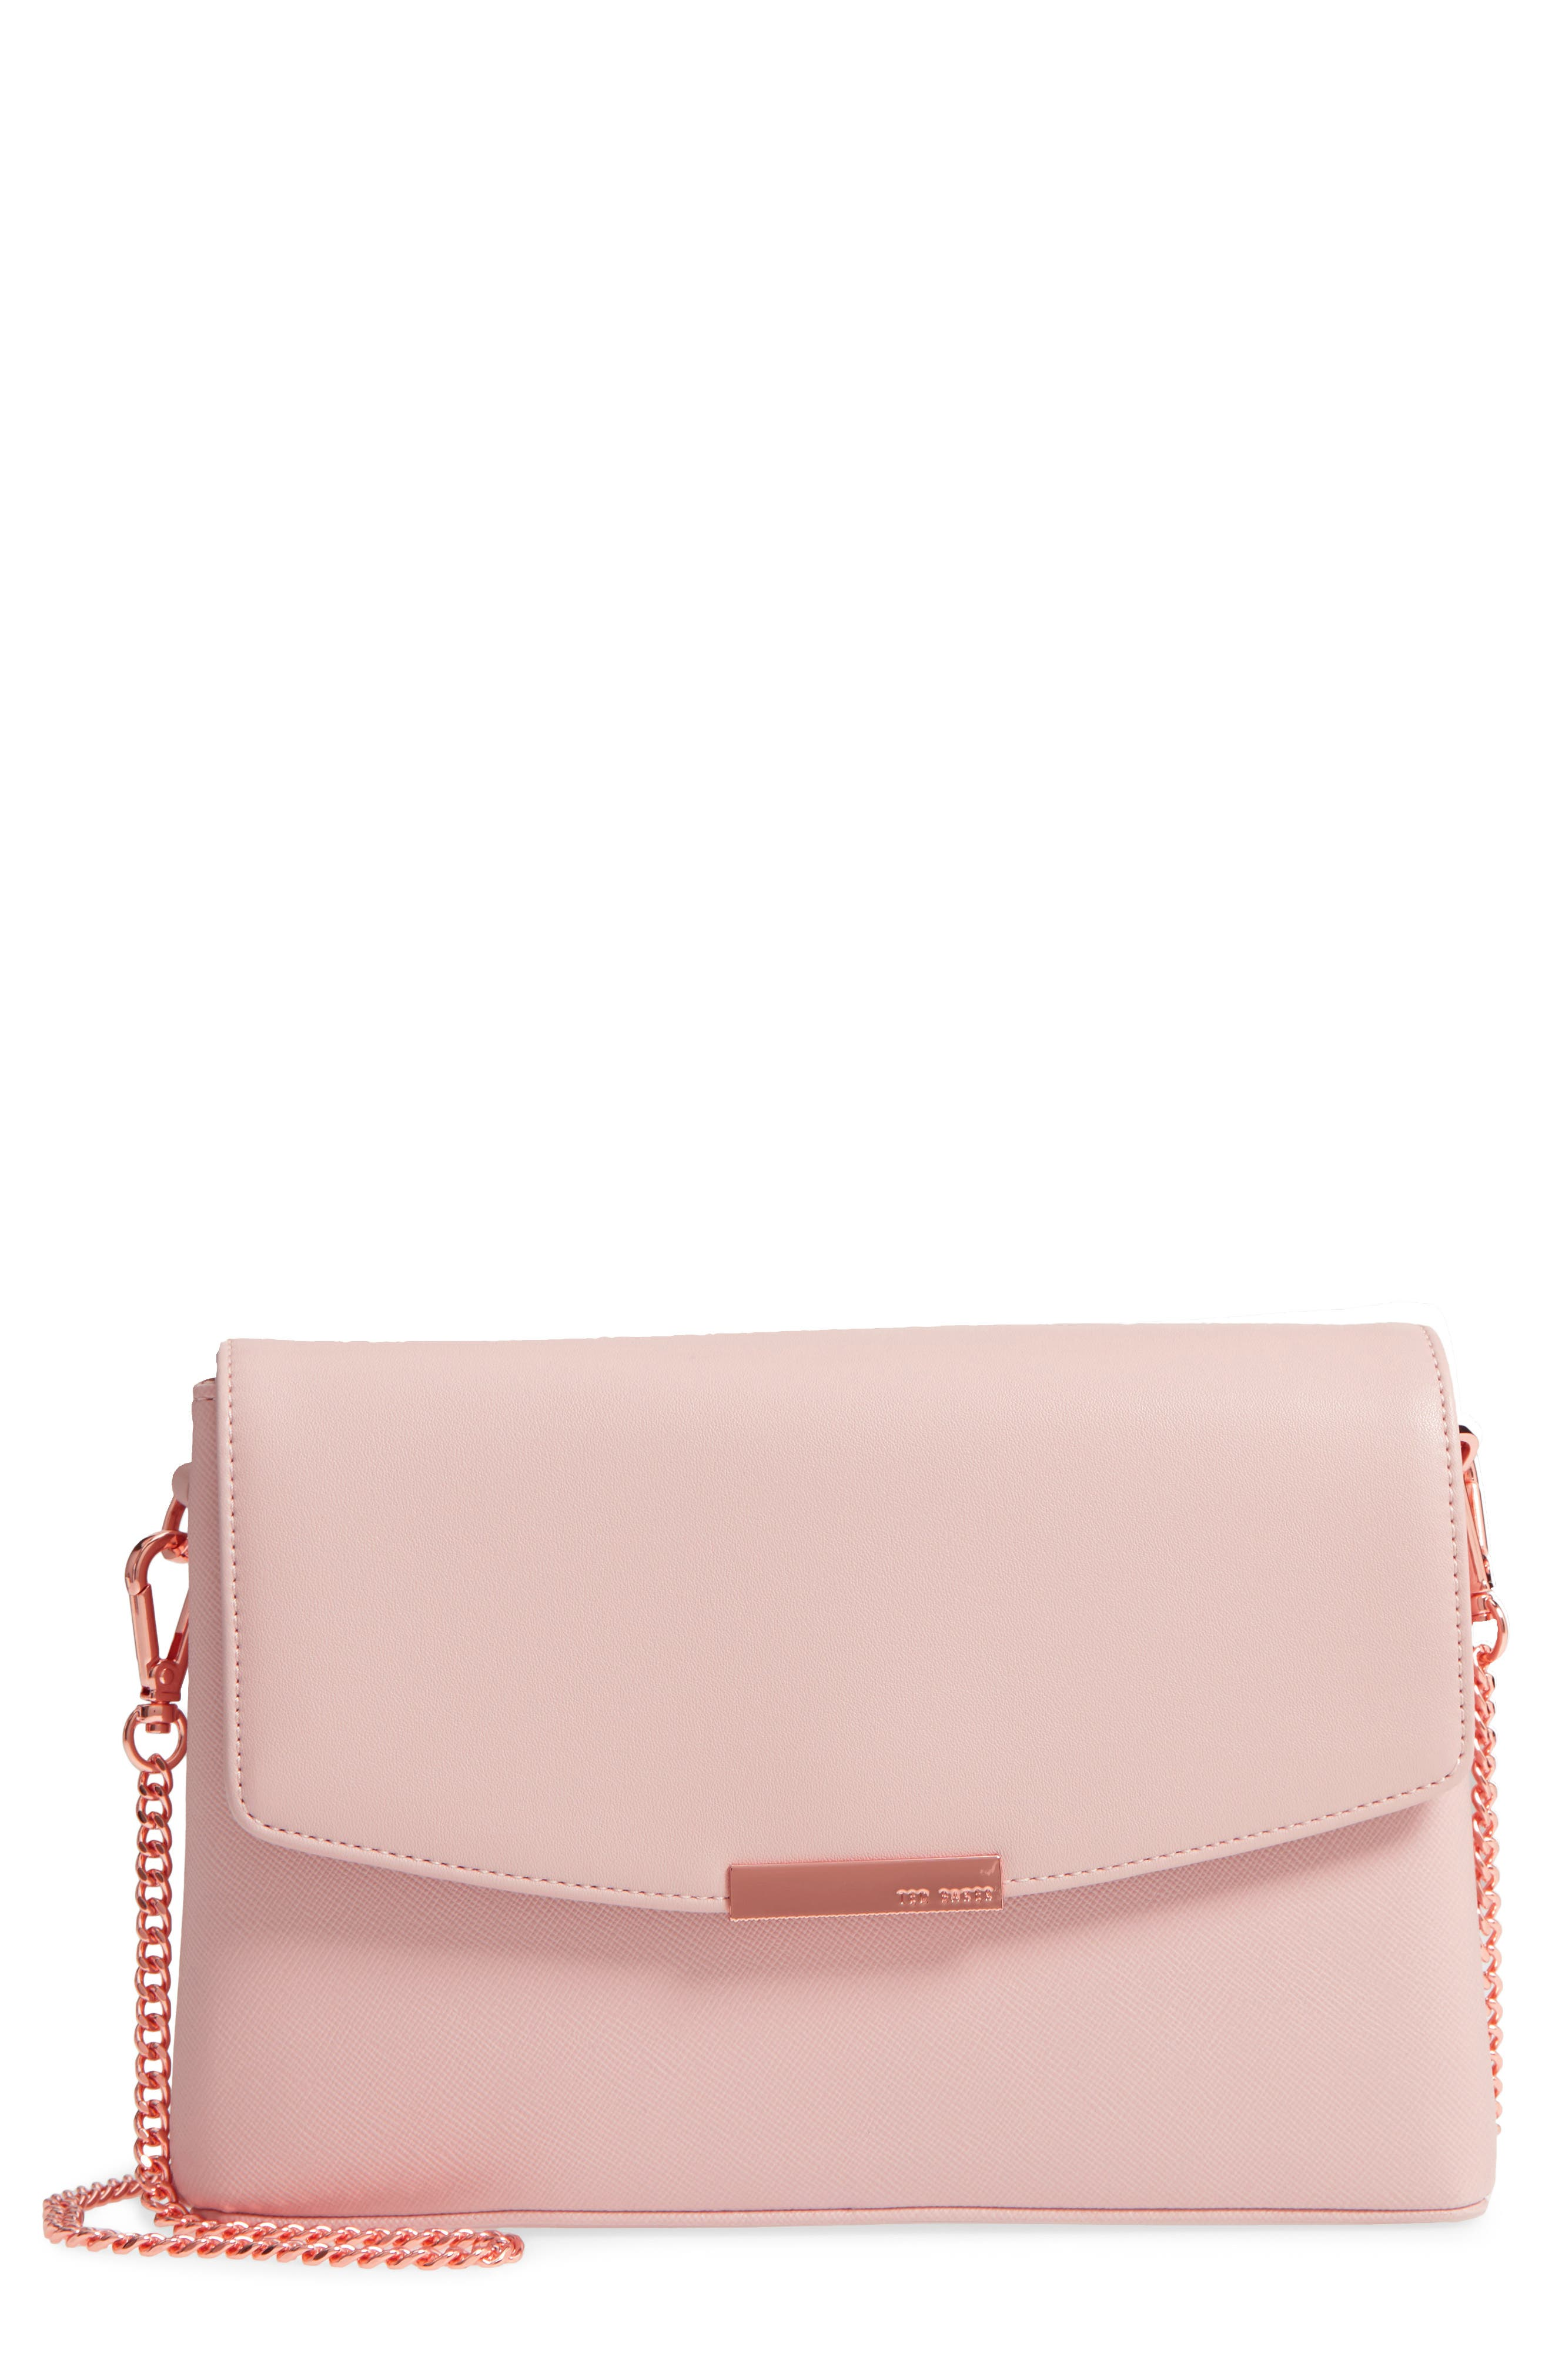 Faux Leather Crossbody Bag,                         Main,                         color, Nude Pink